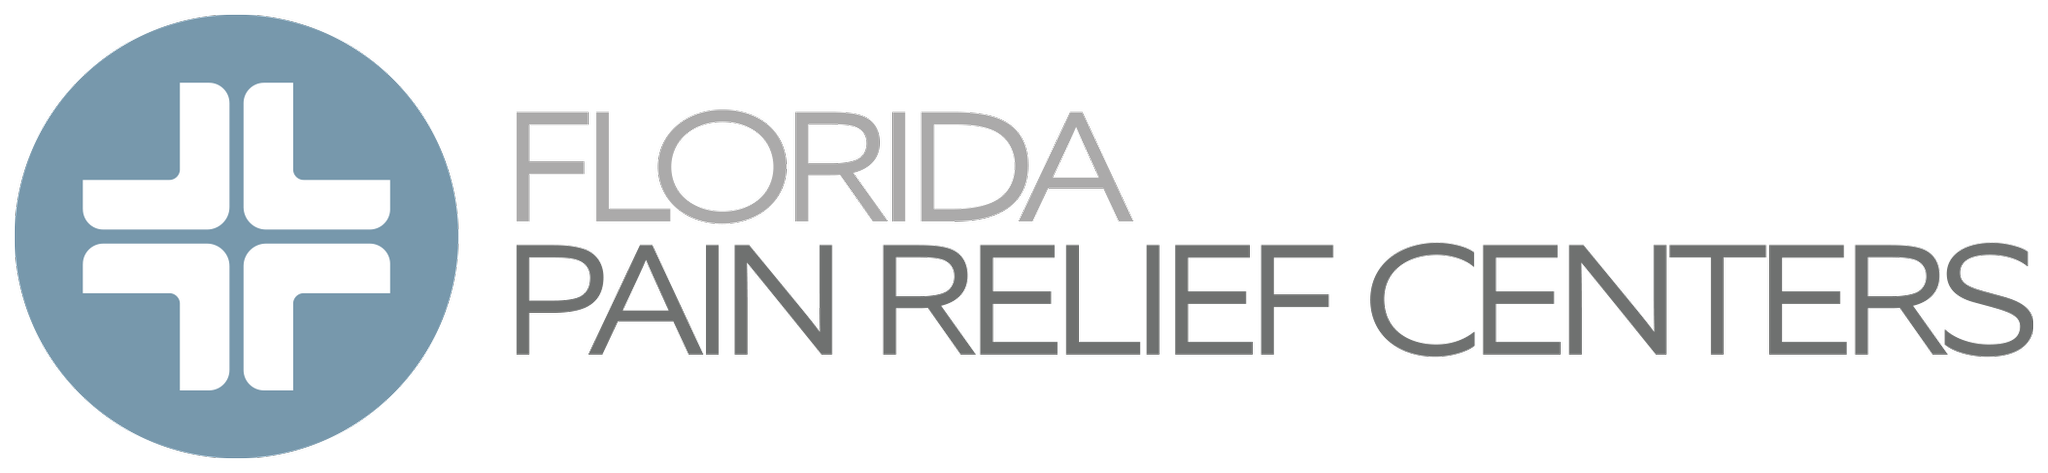 Florida Pain Relief Centers